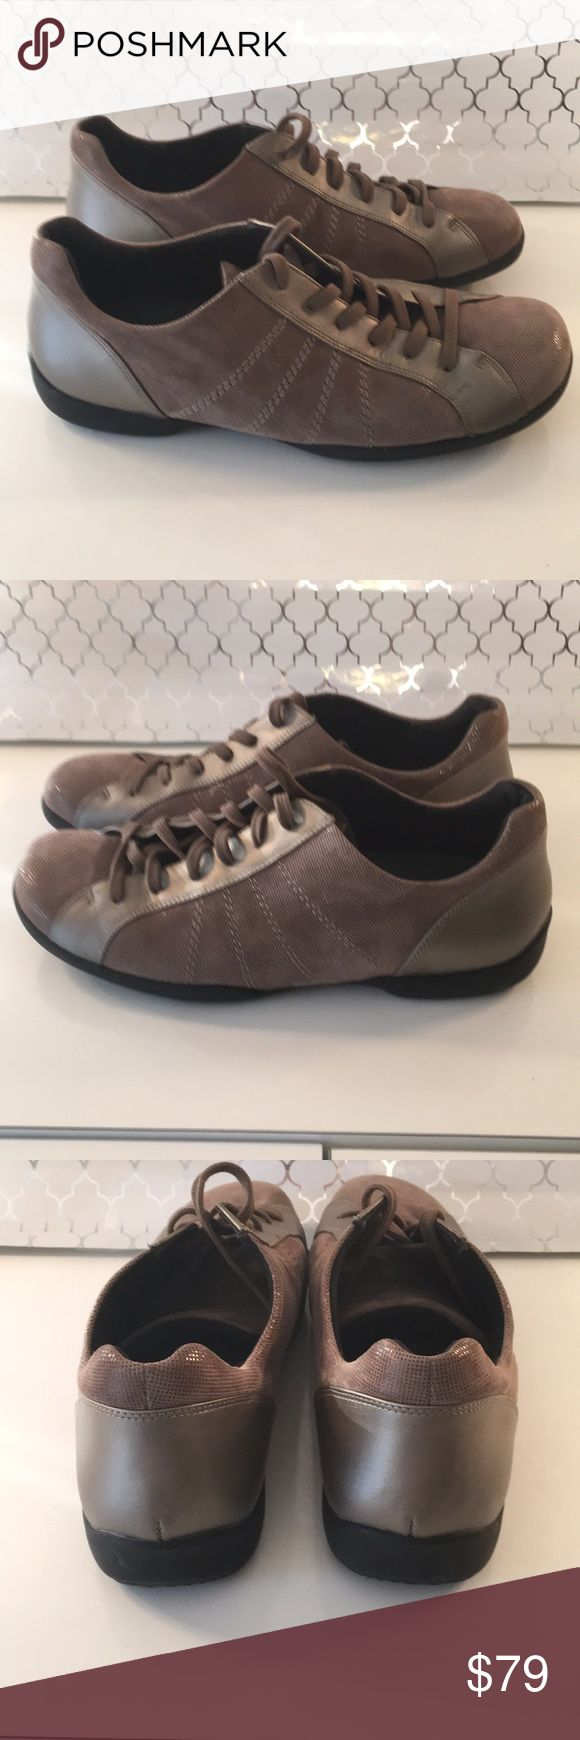 🎁ZIERA MENS CASUAL SHOES 💯AUTHENTIC 🎁ZIERA MENS CASUAL SHOES 💯AUTHENTIC . STUNNING AND STYLISH TRUE HIGH END LUXURY FASHION! ONLY WORN ONCE! THEY ARE A EUROPEAN SIZE 43 WHICH CONVERTS TO AN AMERICAN 9.5. THE COLORS ARE GRAY AND PEWTER Ziera Shoes